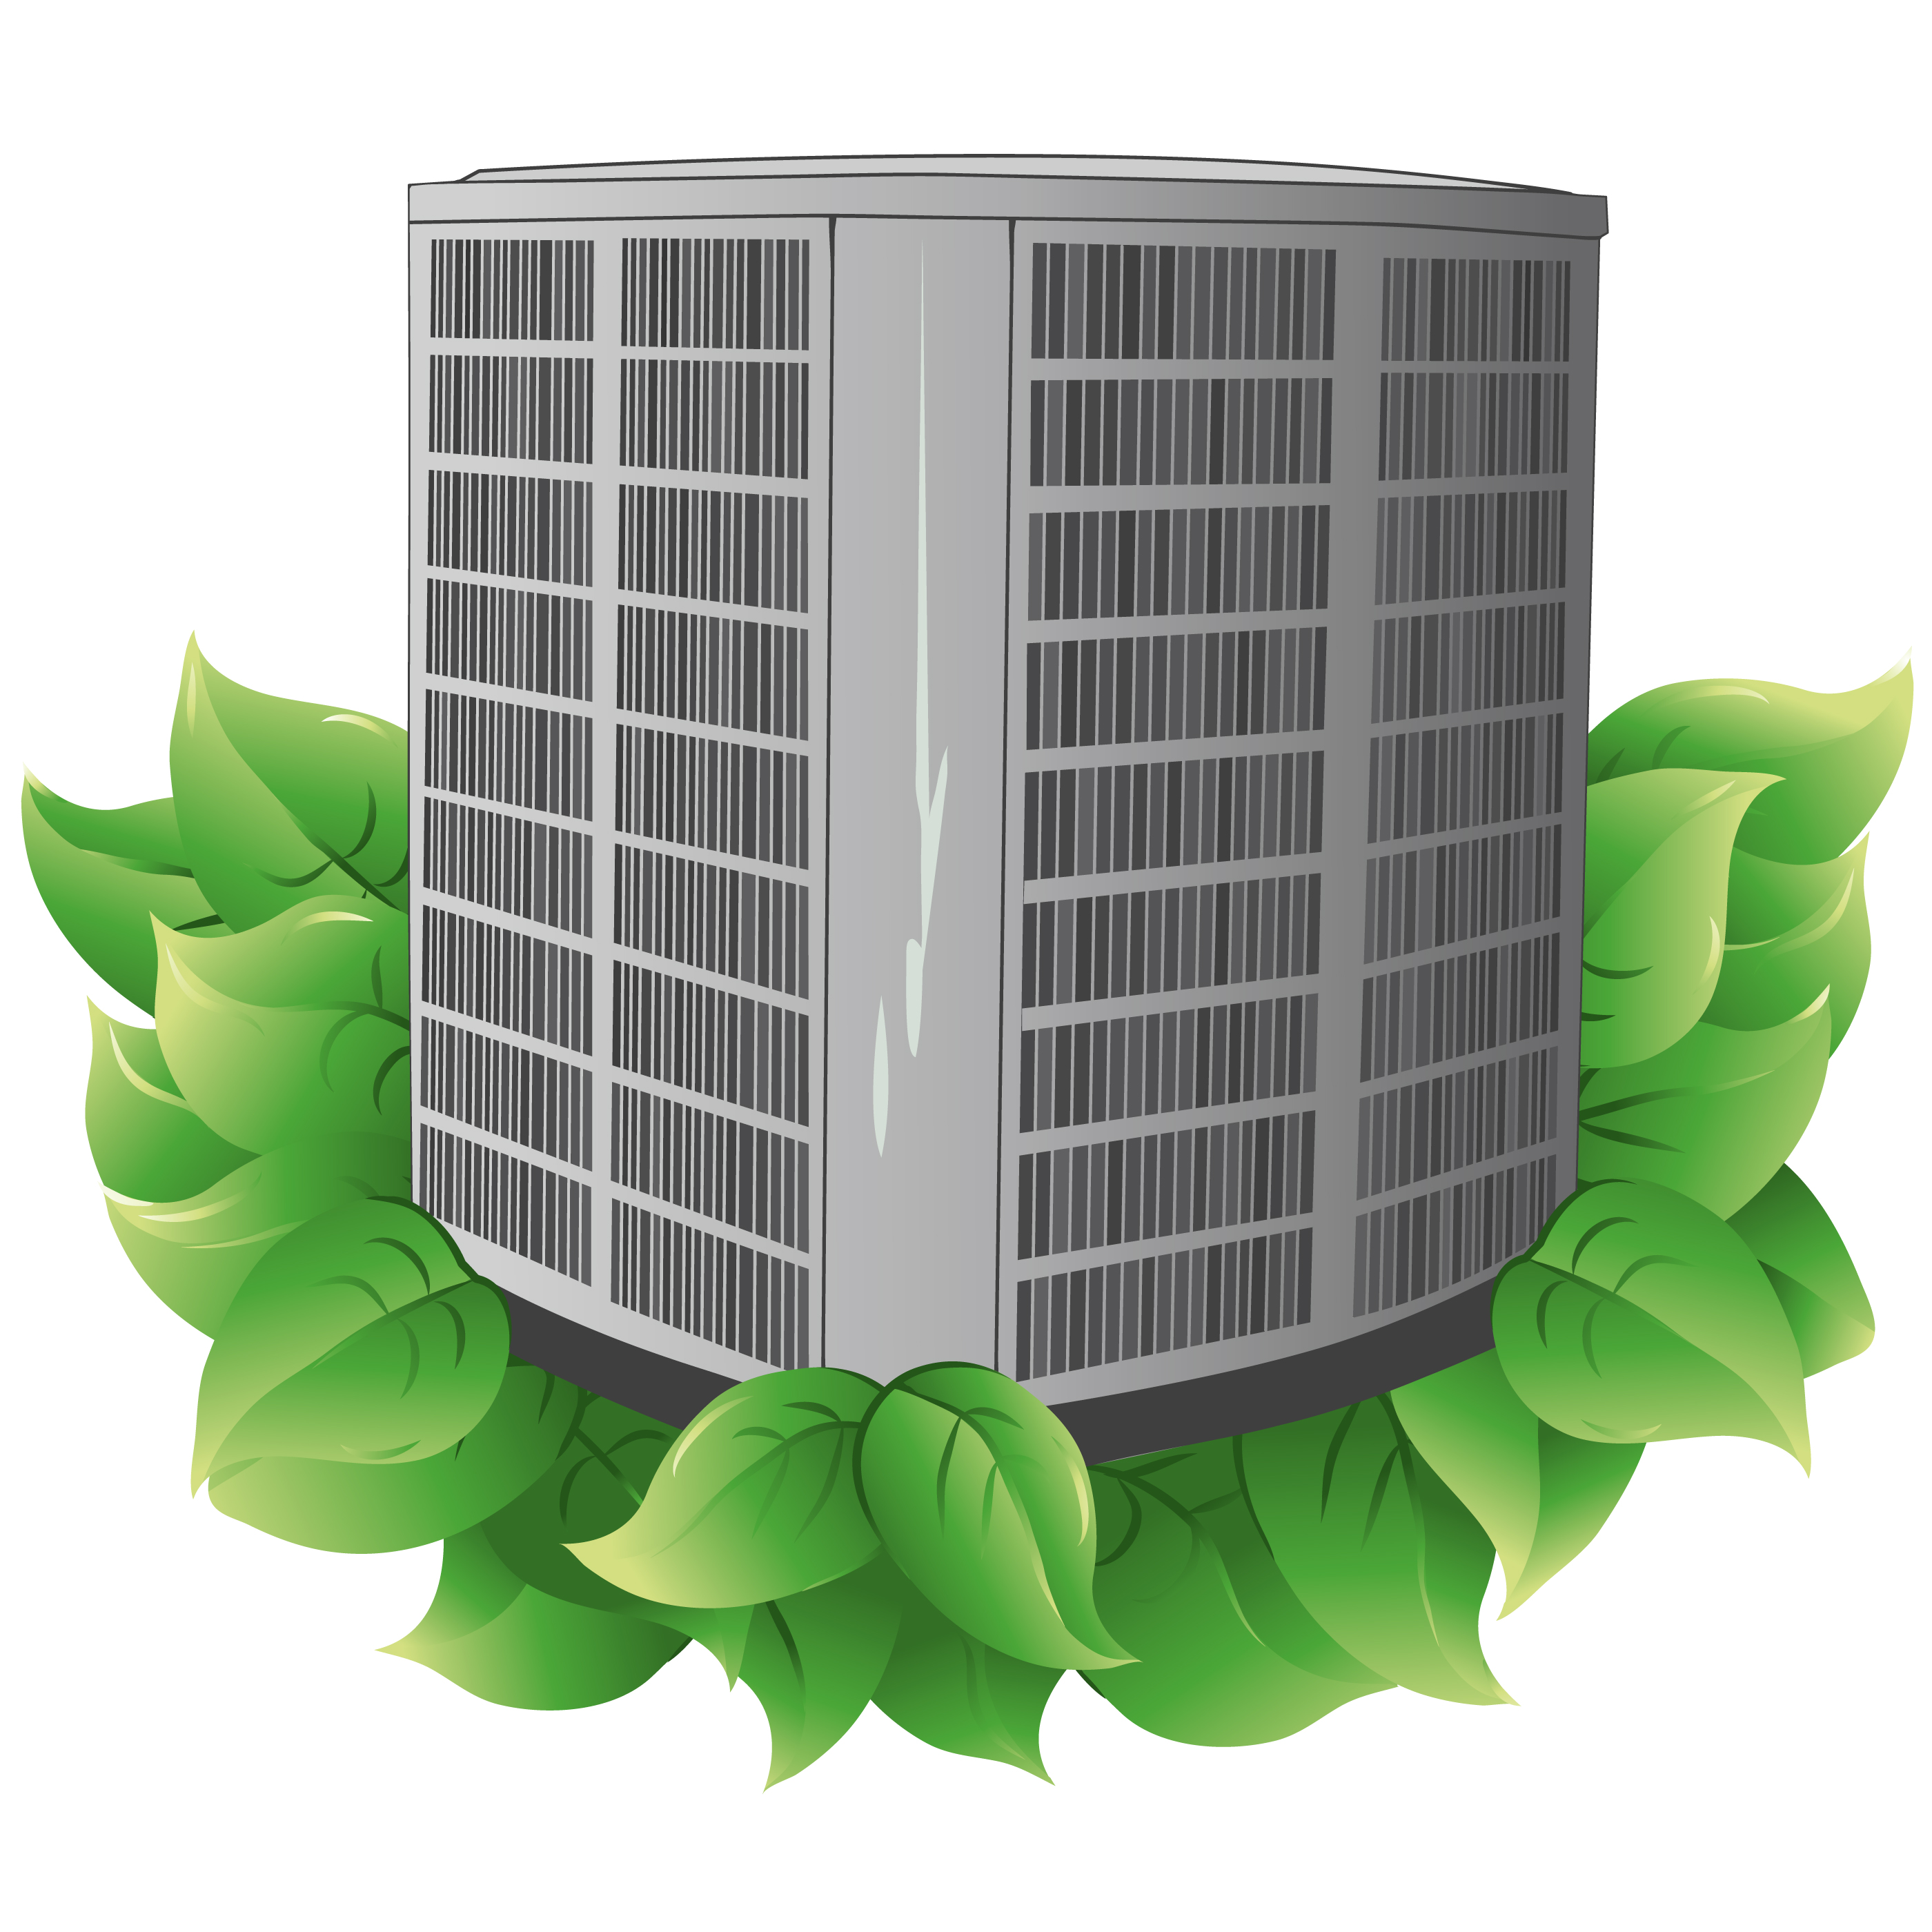 Upgrade to an energy efficient unit through floridapace Most efficient heating systems